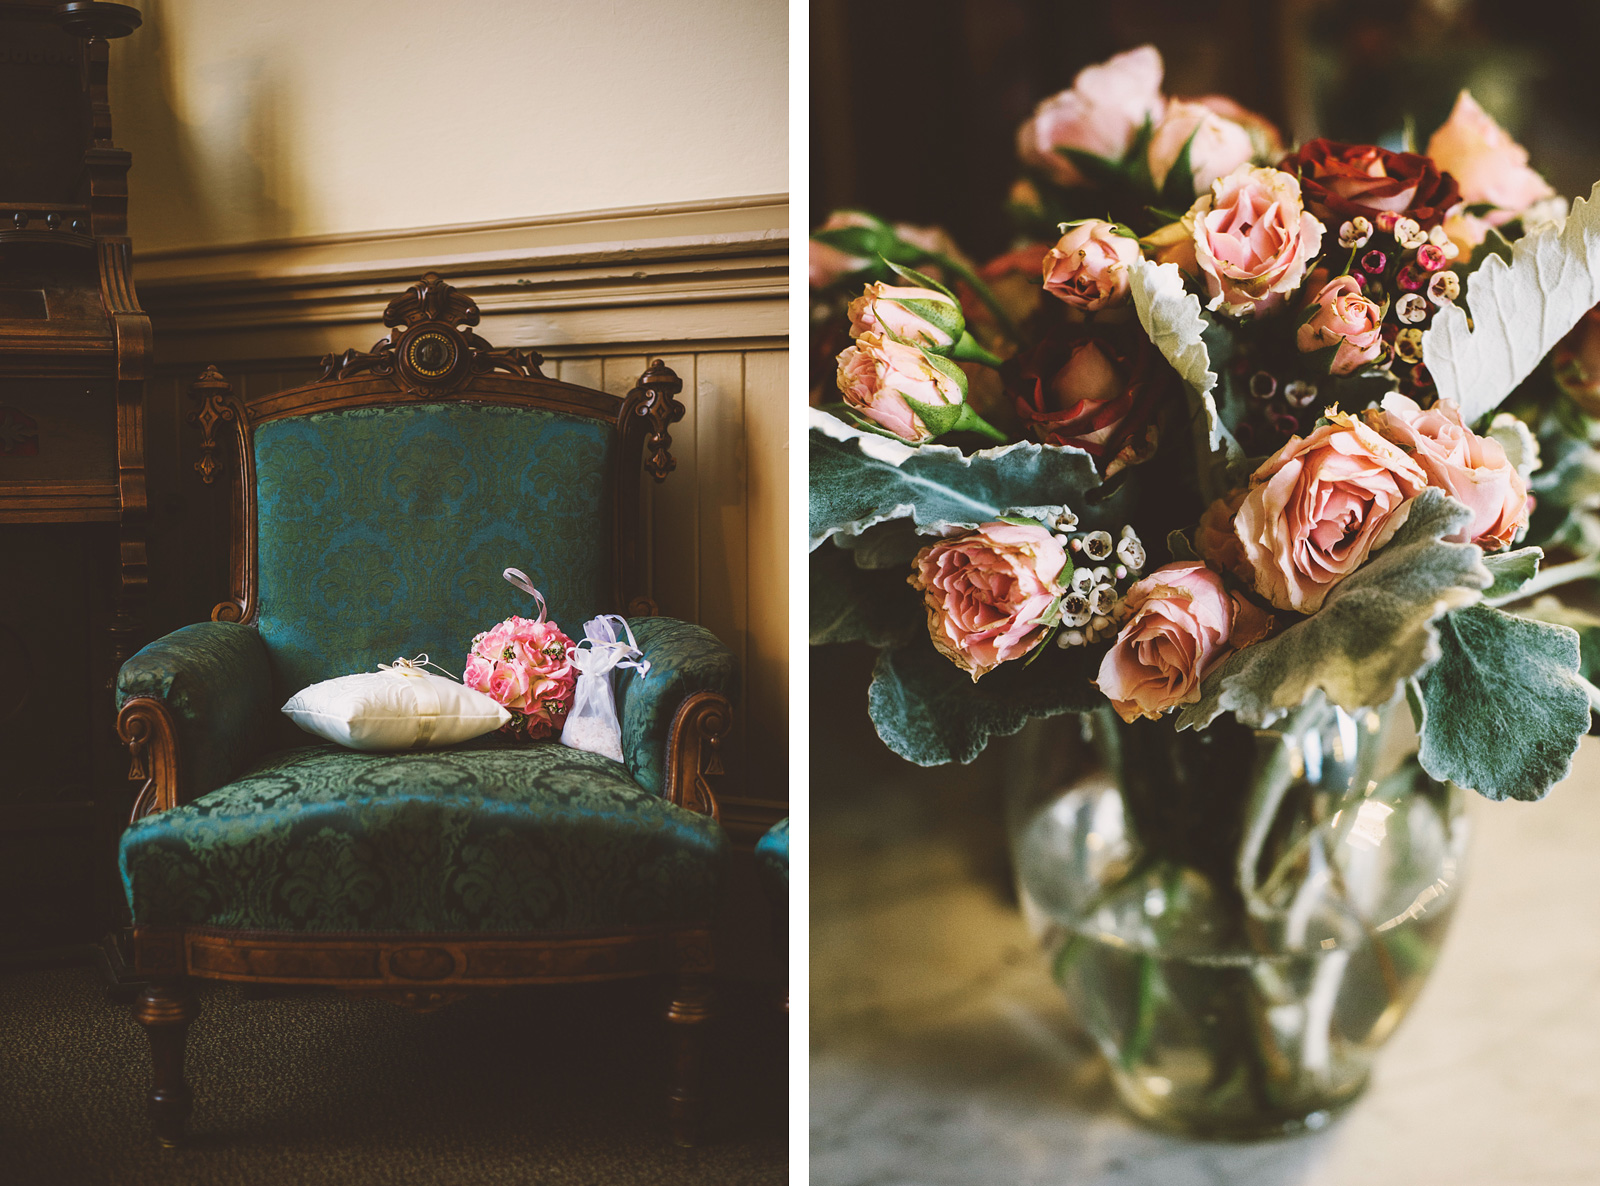 Ring Bearer's Pillow and Bride's Bouquet sitting on a velvet chair | Old Church Wedding Photos